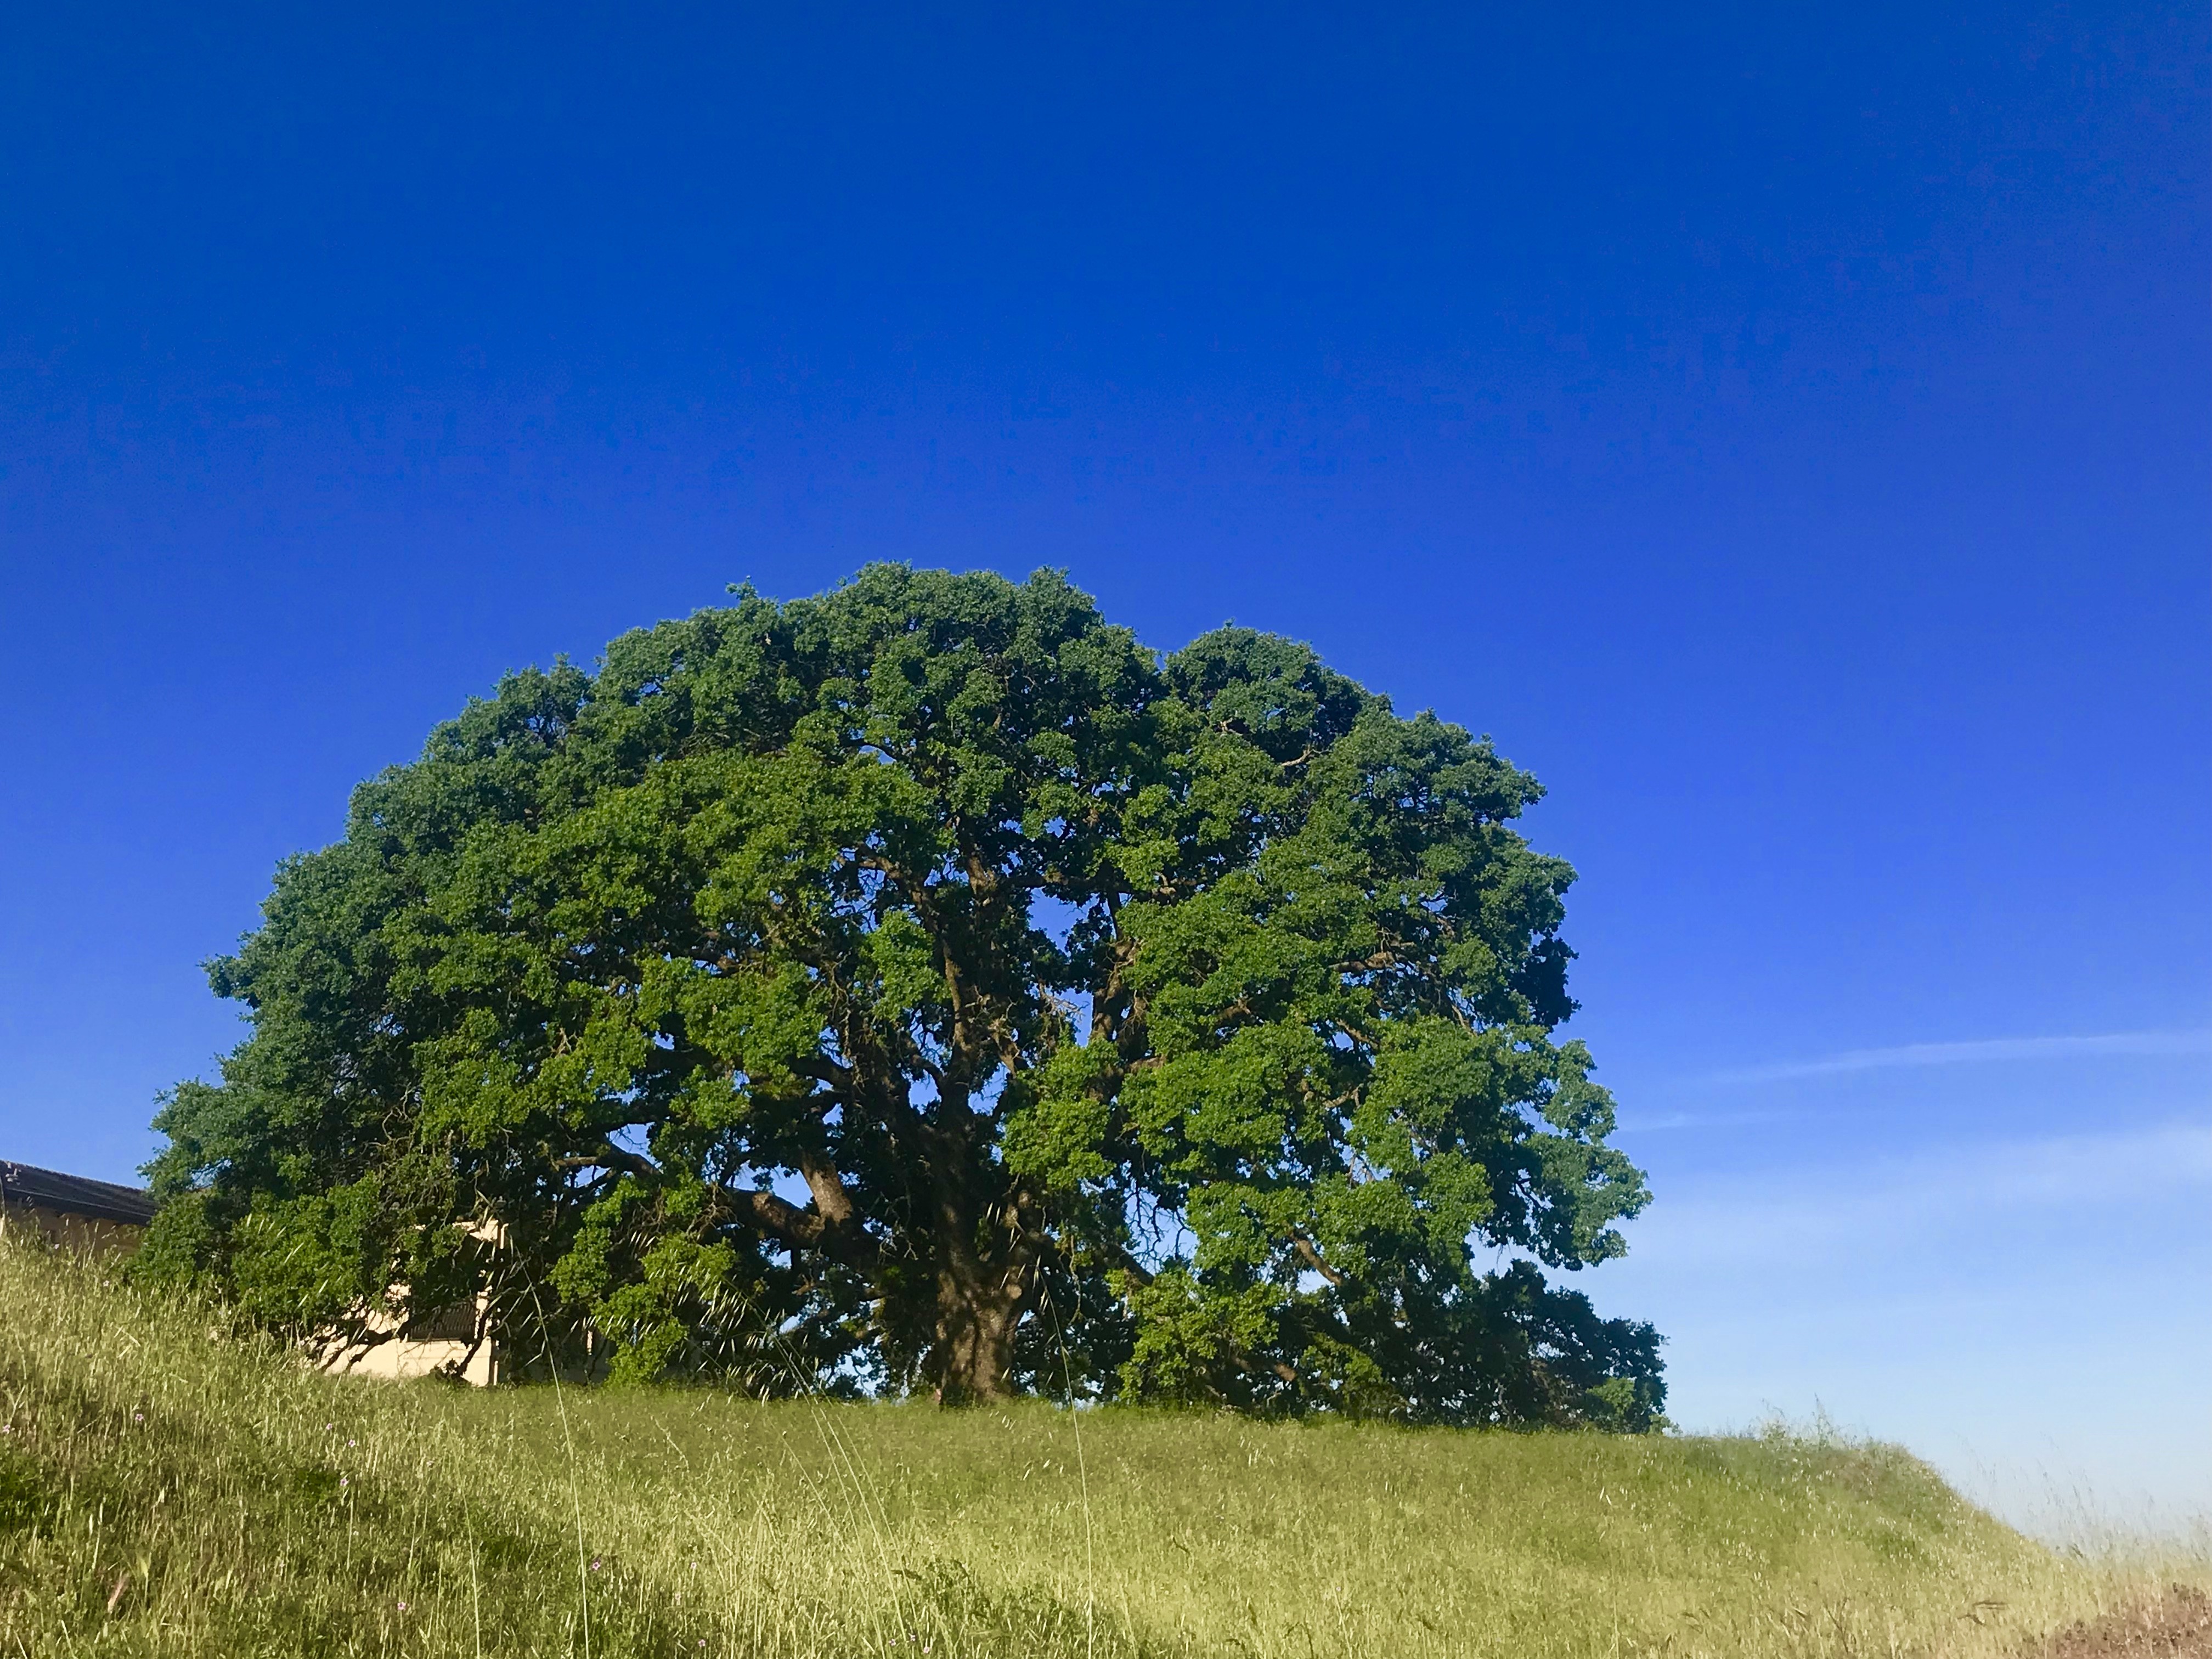 Large tree on hill